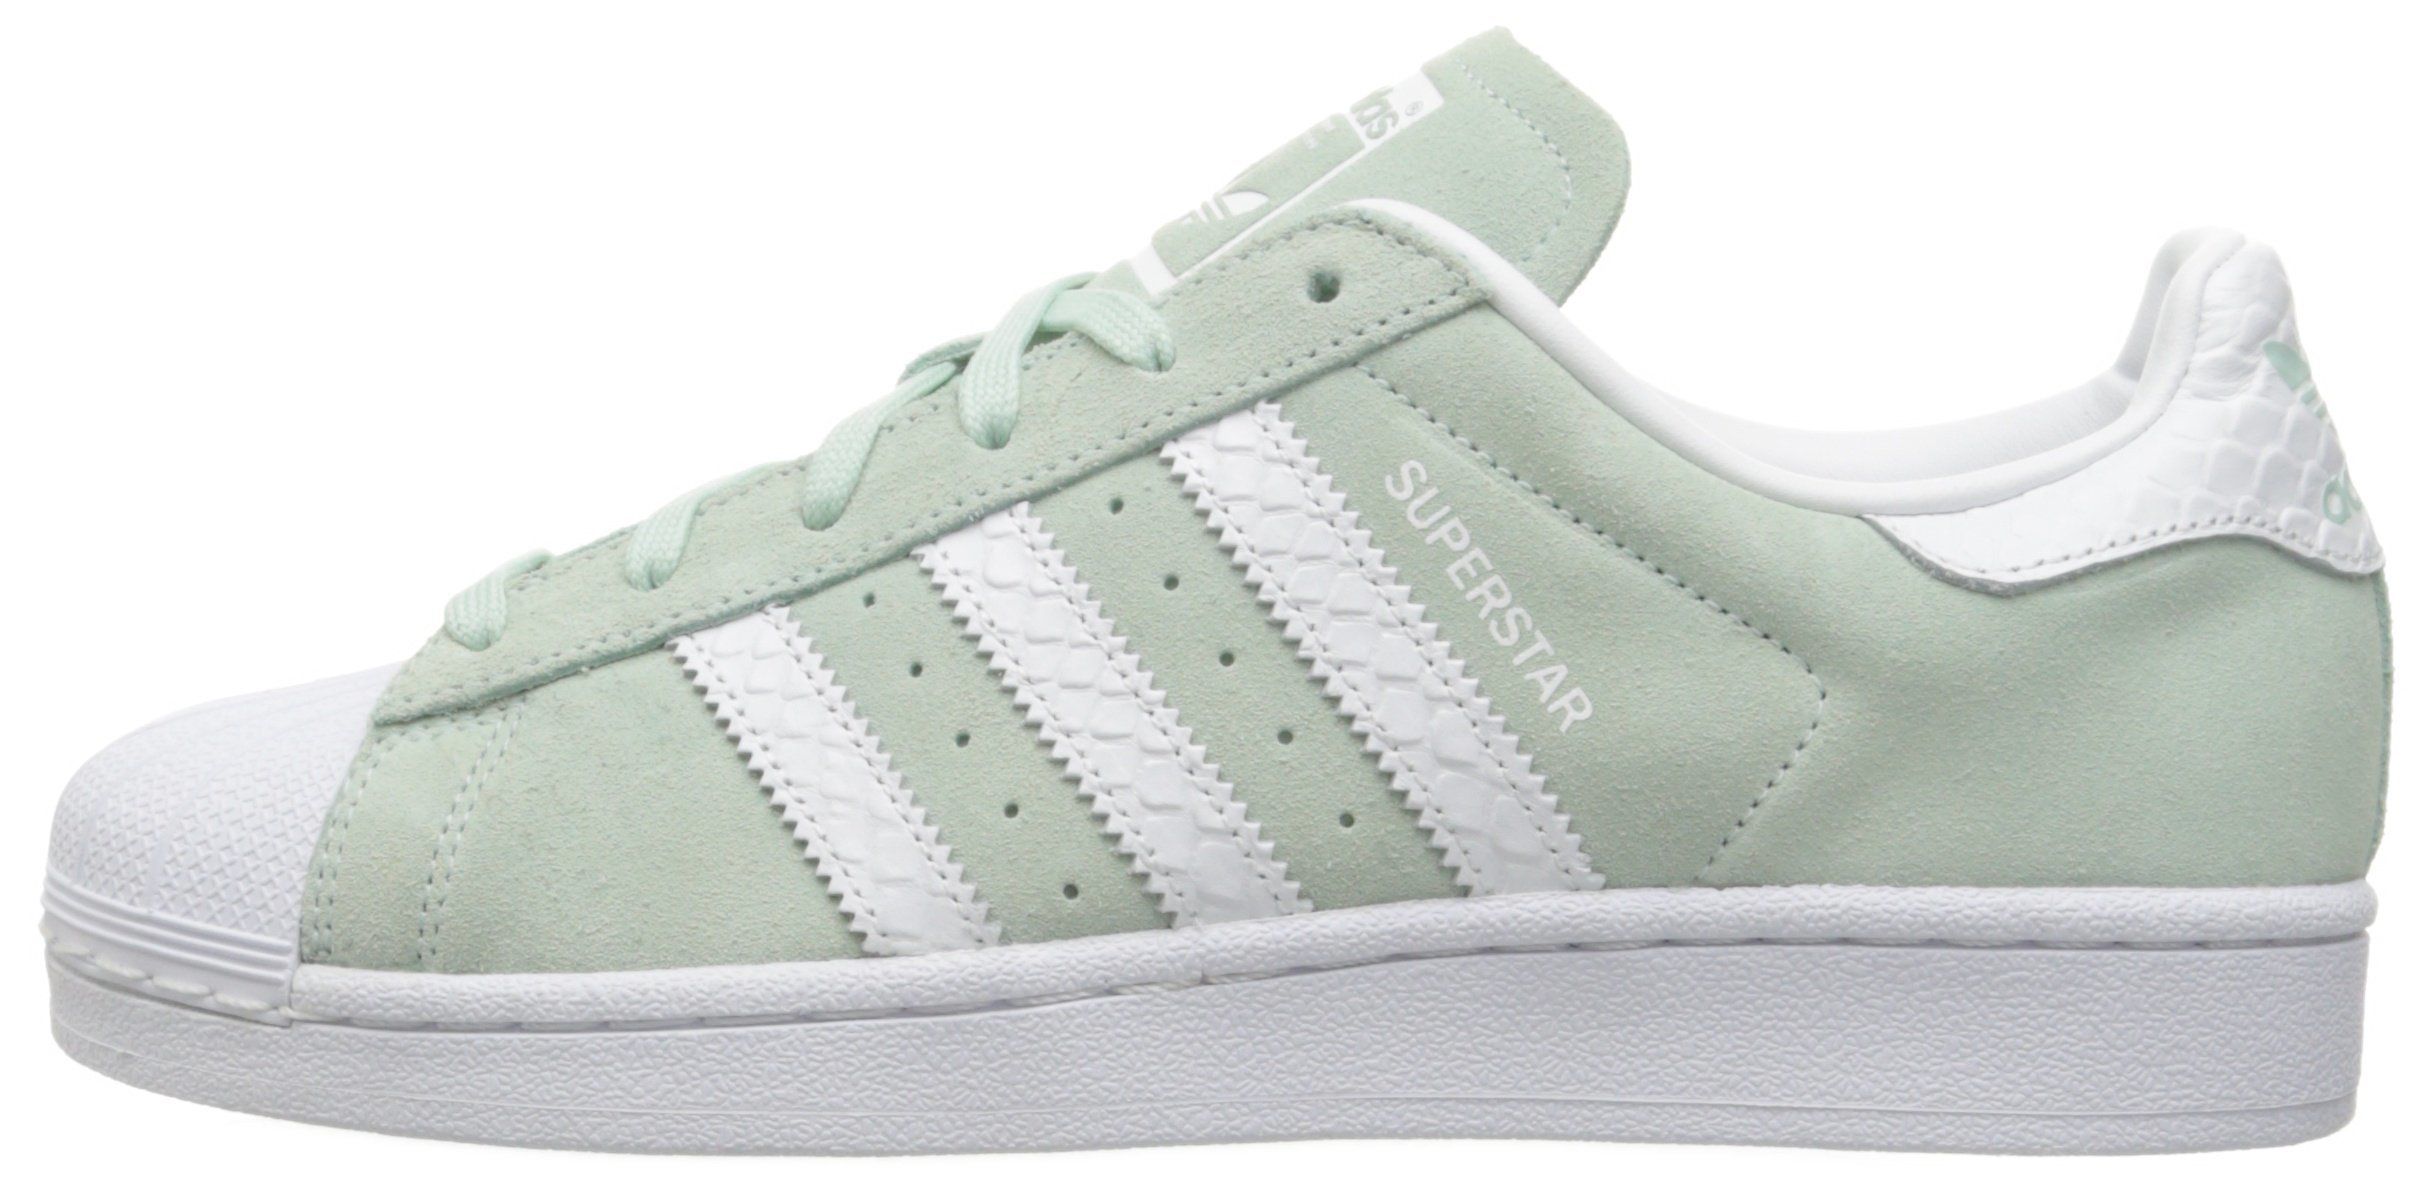 Köp adidas Originals Superstar W Ice Mint/ White/ Gröna Skor